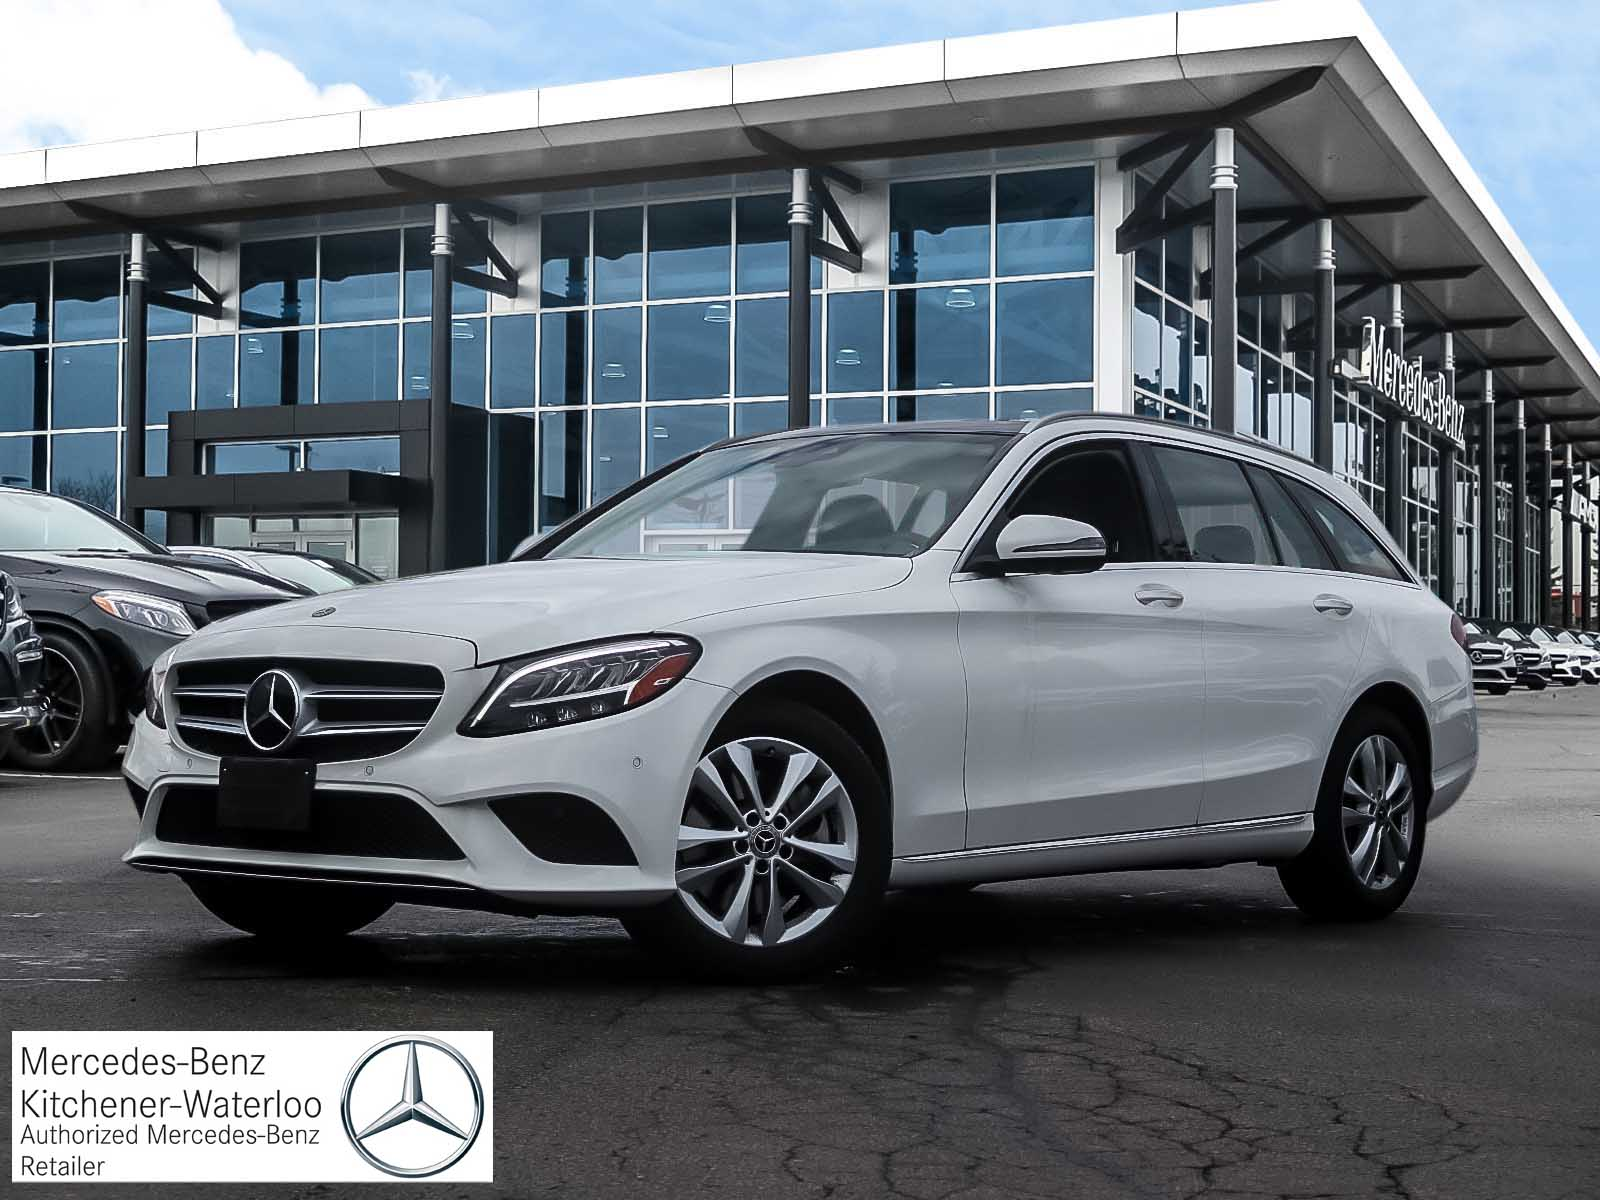 New 2019 Mercedes-Benz C300 4MATIC Wagon